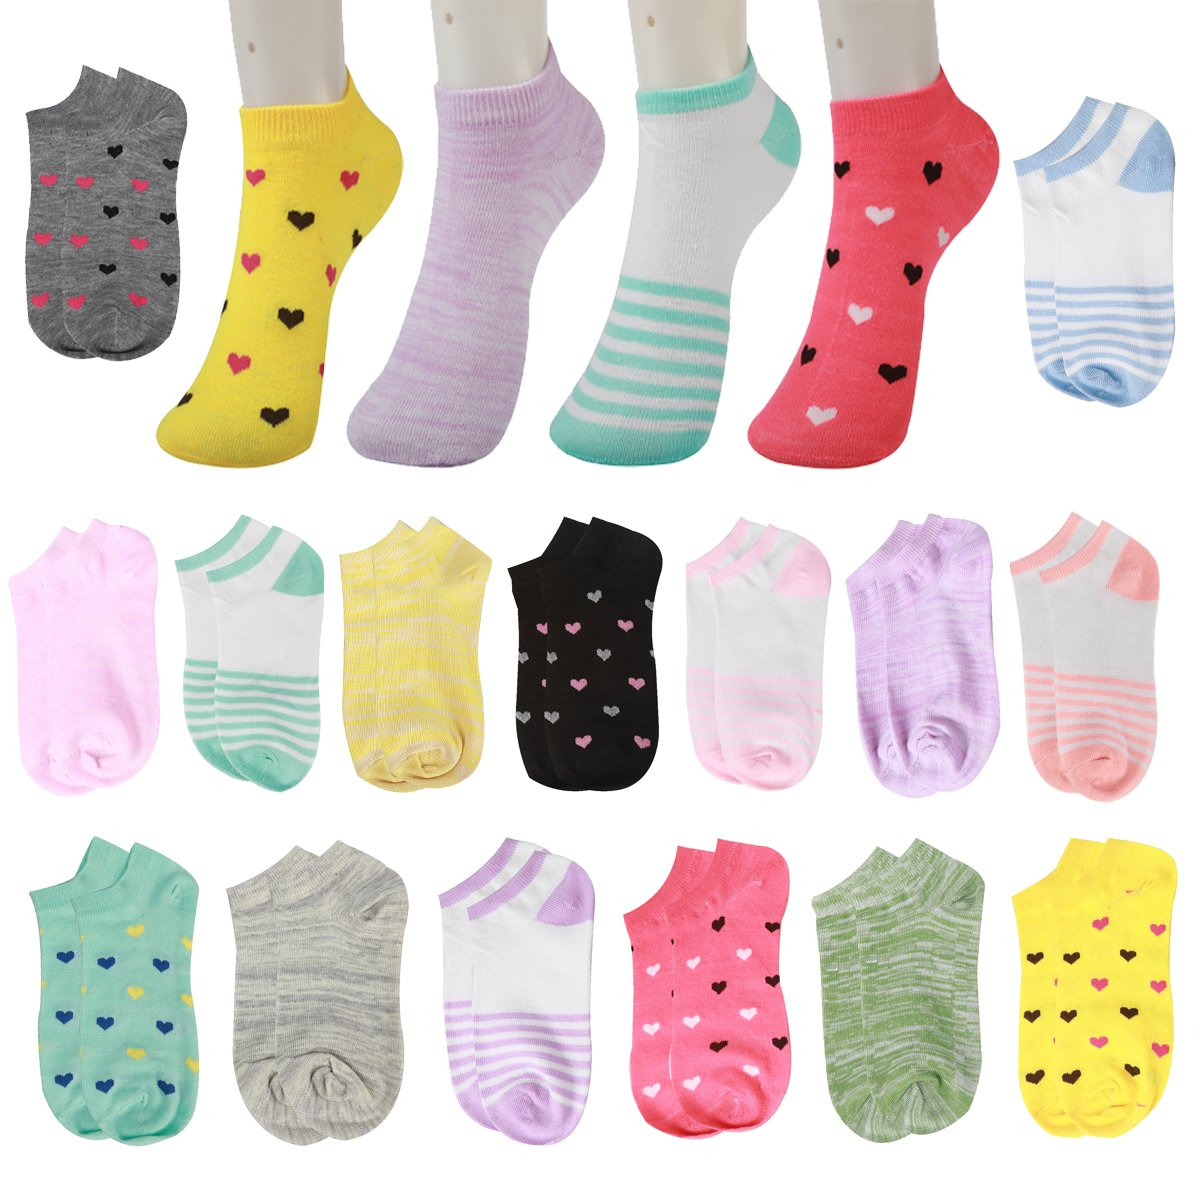 15 Pairs Love Colorful Patterned Cotton Low Cut No Show Ankle Socks Teens girls (Heart shape-15 pairs)